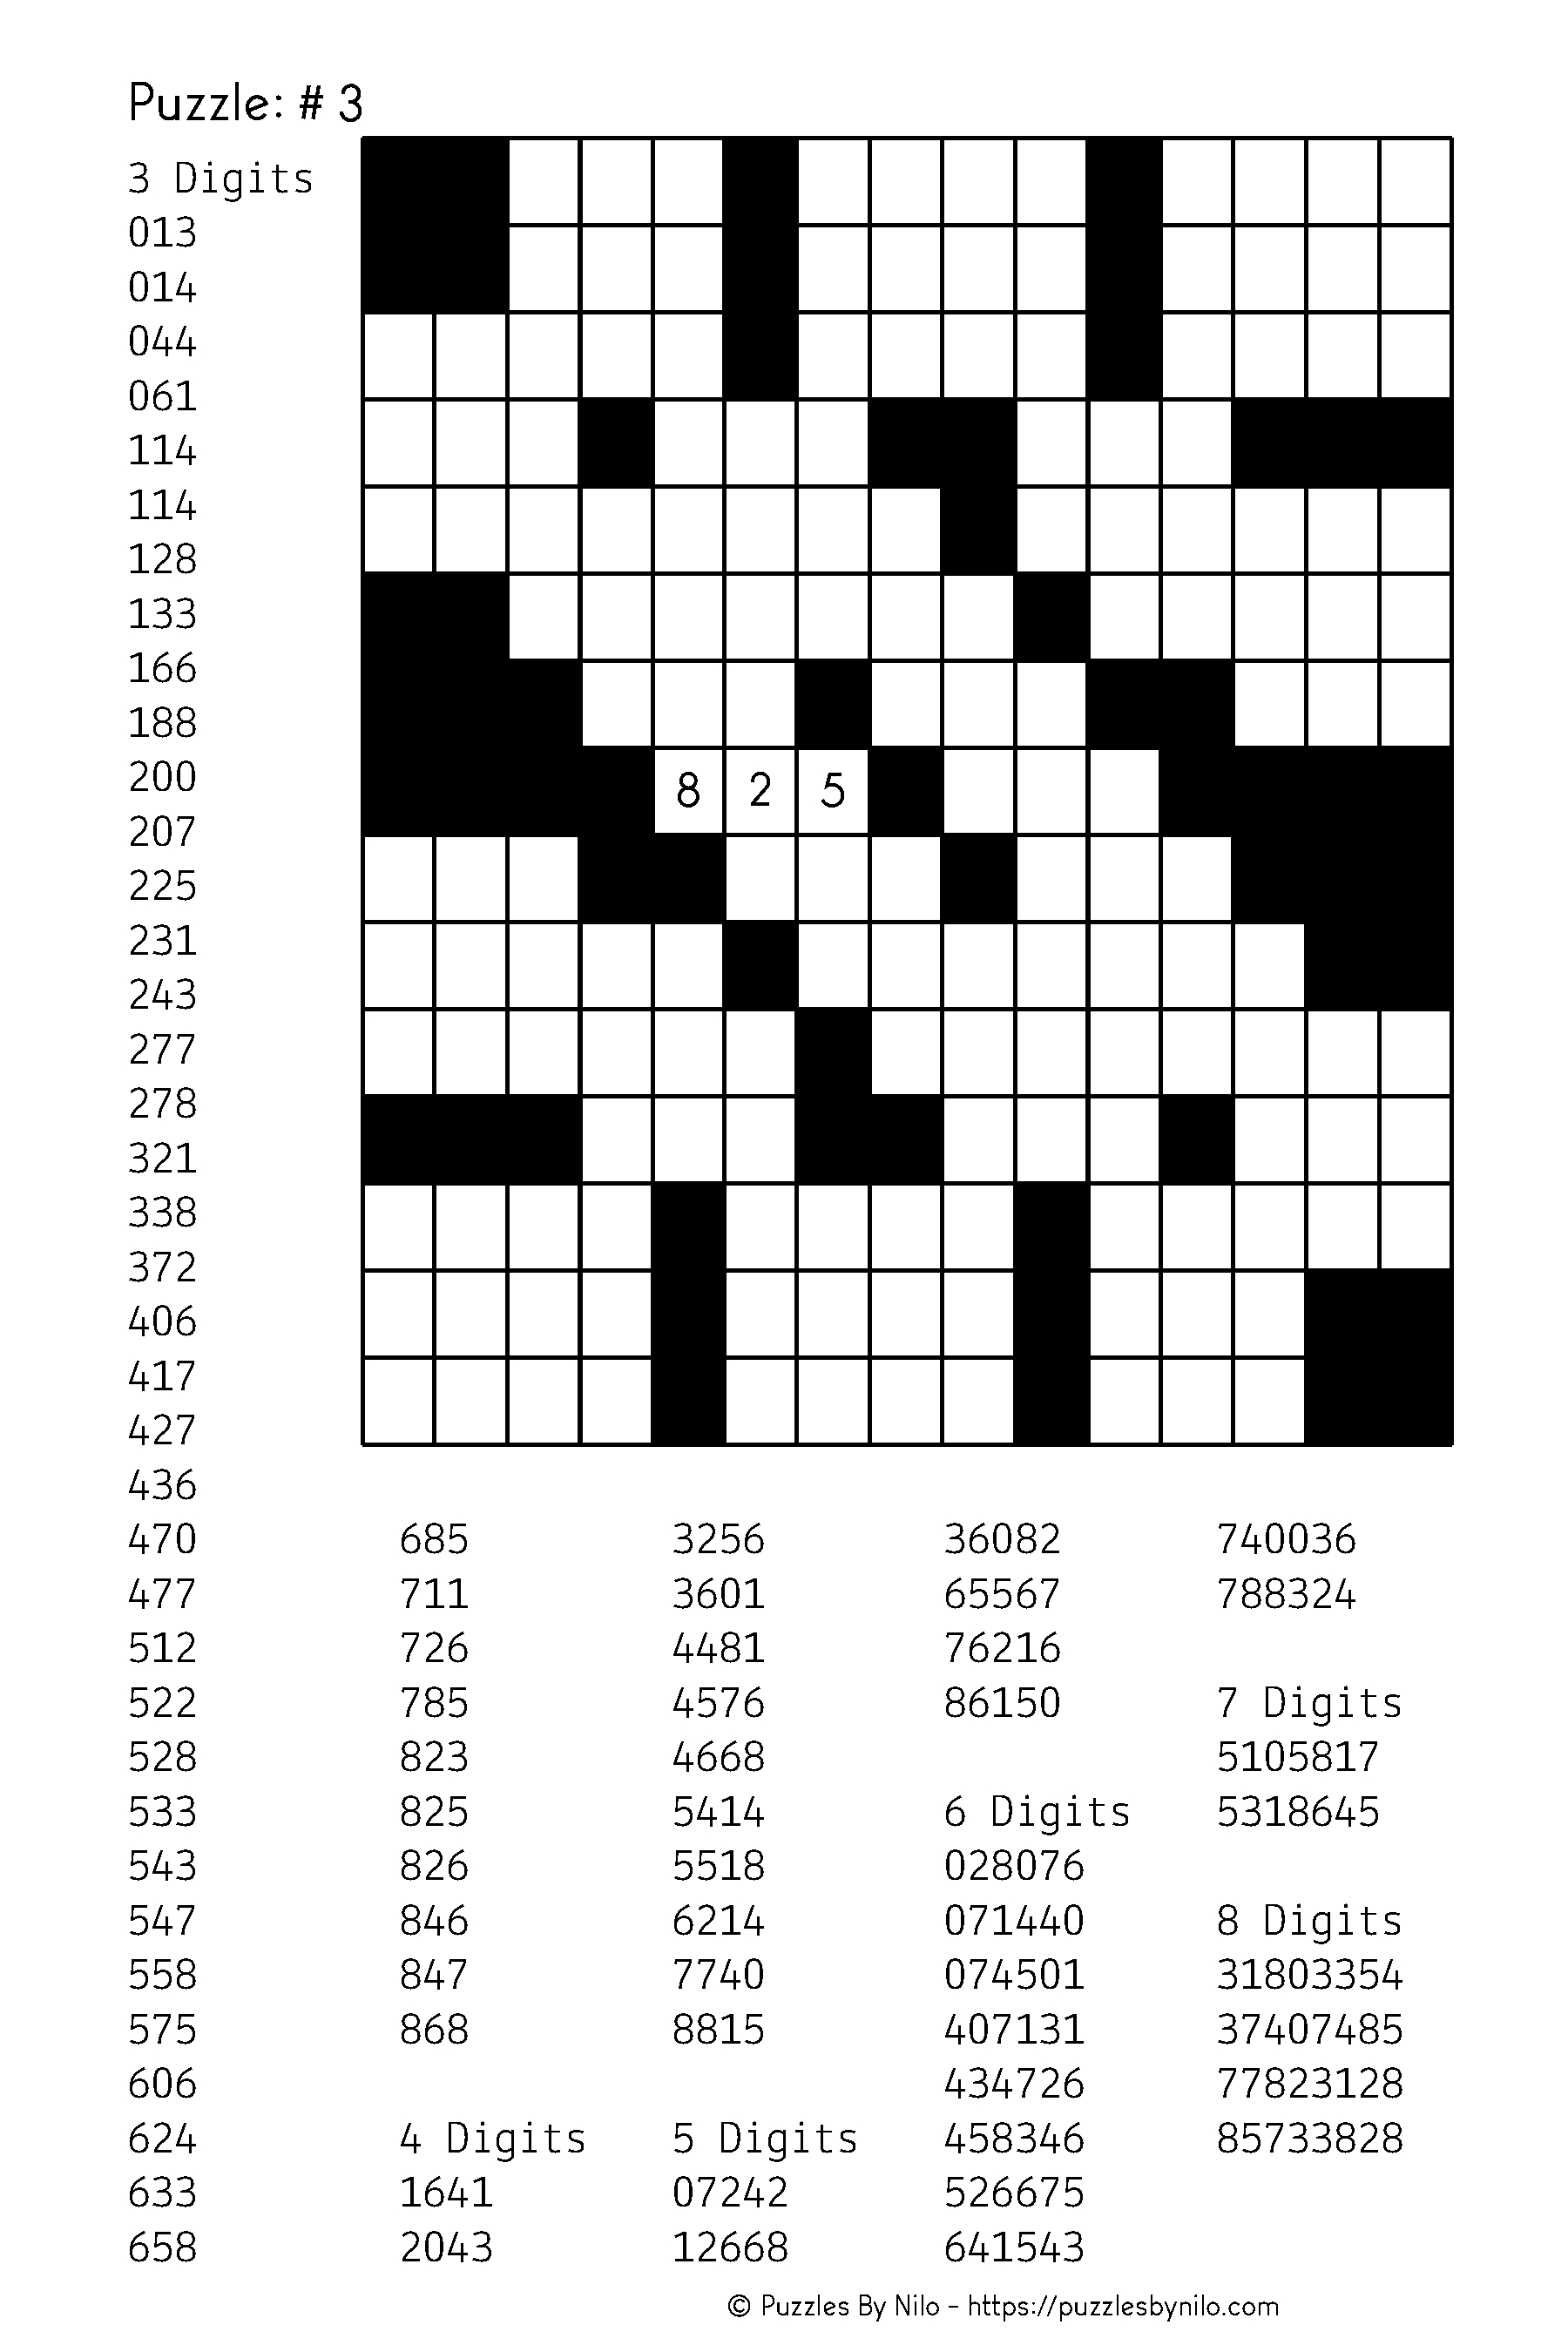 Get Your Free Puzzle Here! - Https://goo.gl/hxpjtw   Math Ideas - Free Printable Crossword Puzzle #6